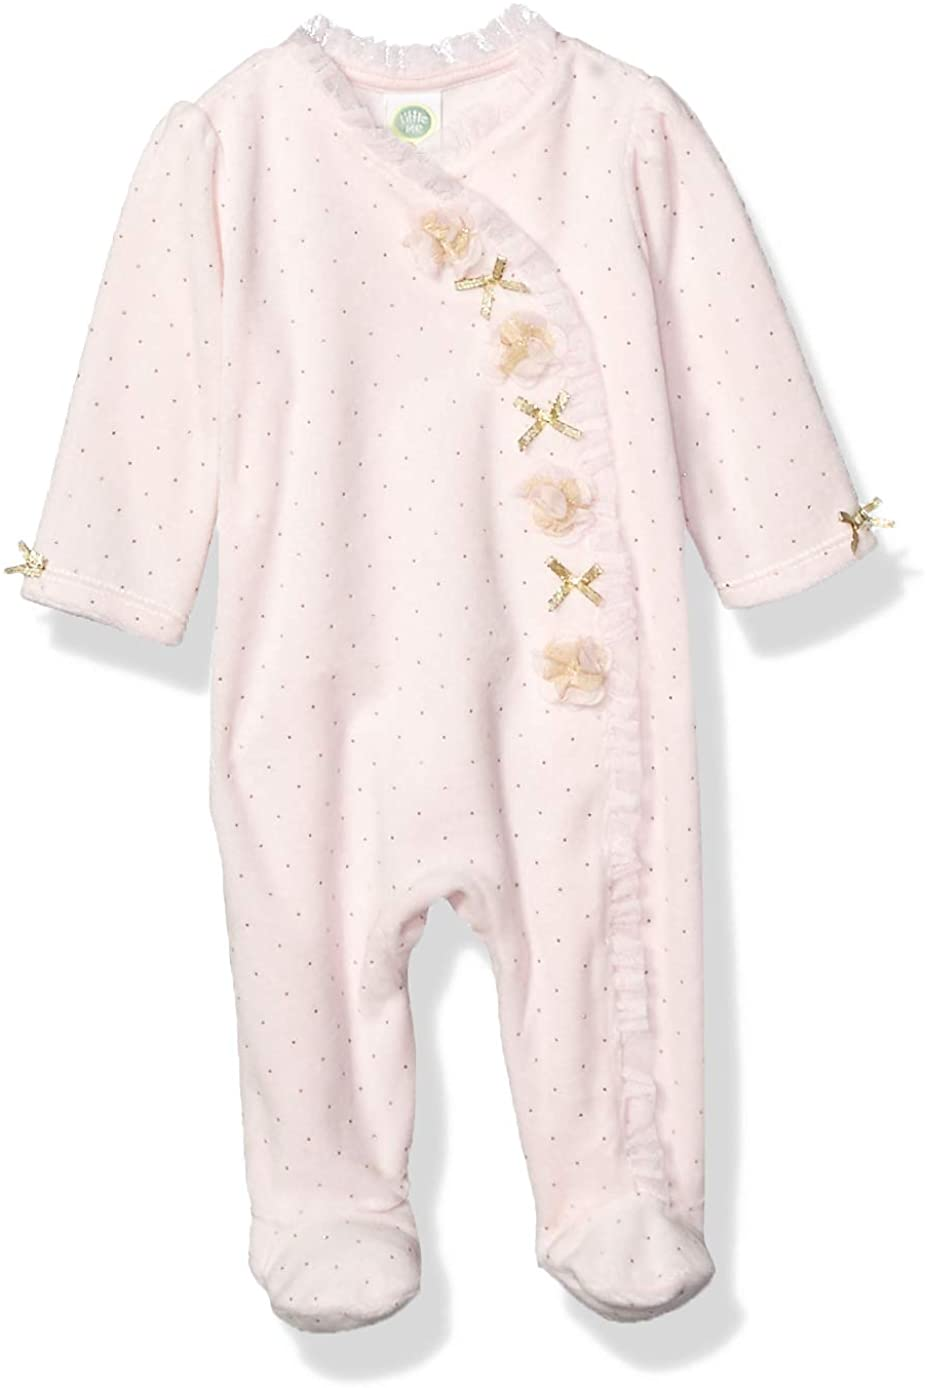 Little Me Baby Girl's Velour Footie Pants